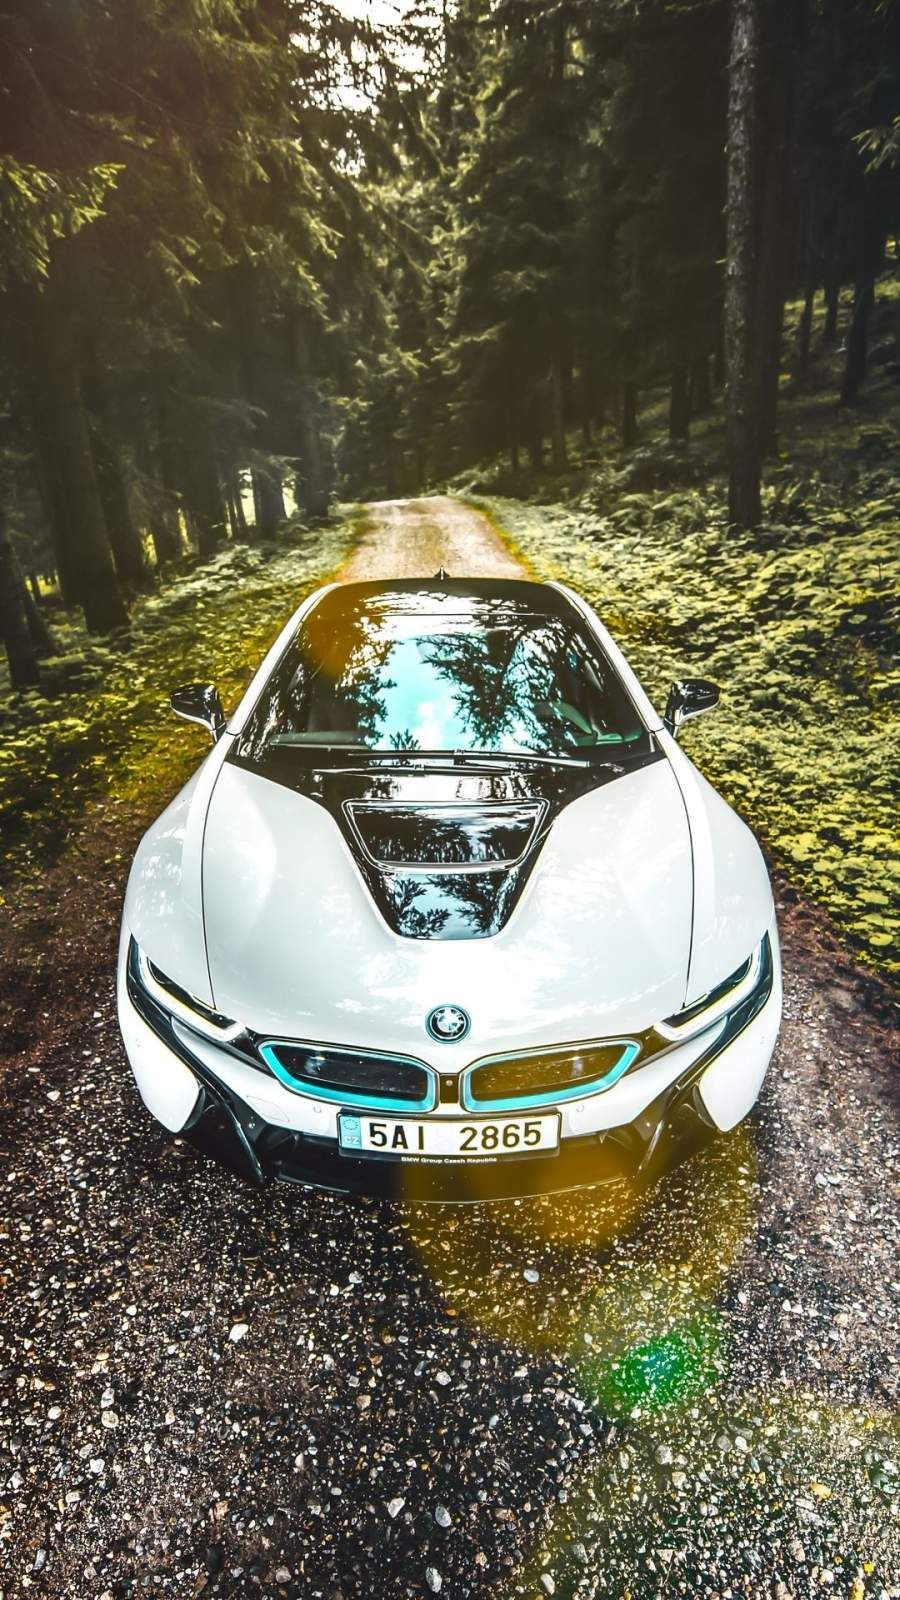 Cars Wallpapers Page 8 Of 27 Iphone Wallpapers Iphone Wallpapers Bmw I8 Bmw Wallpapers Bmw